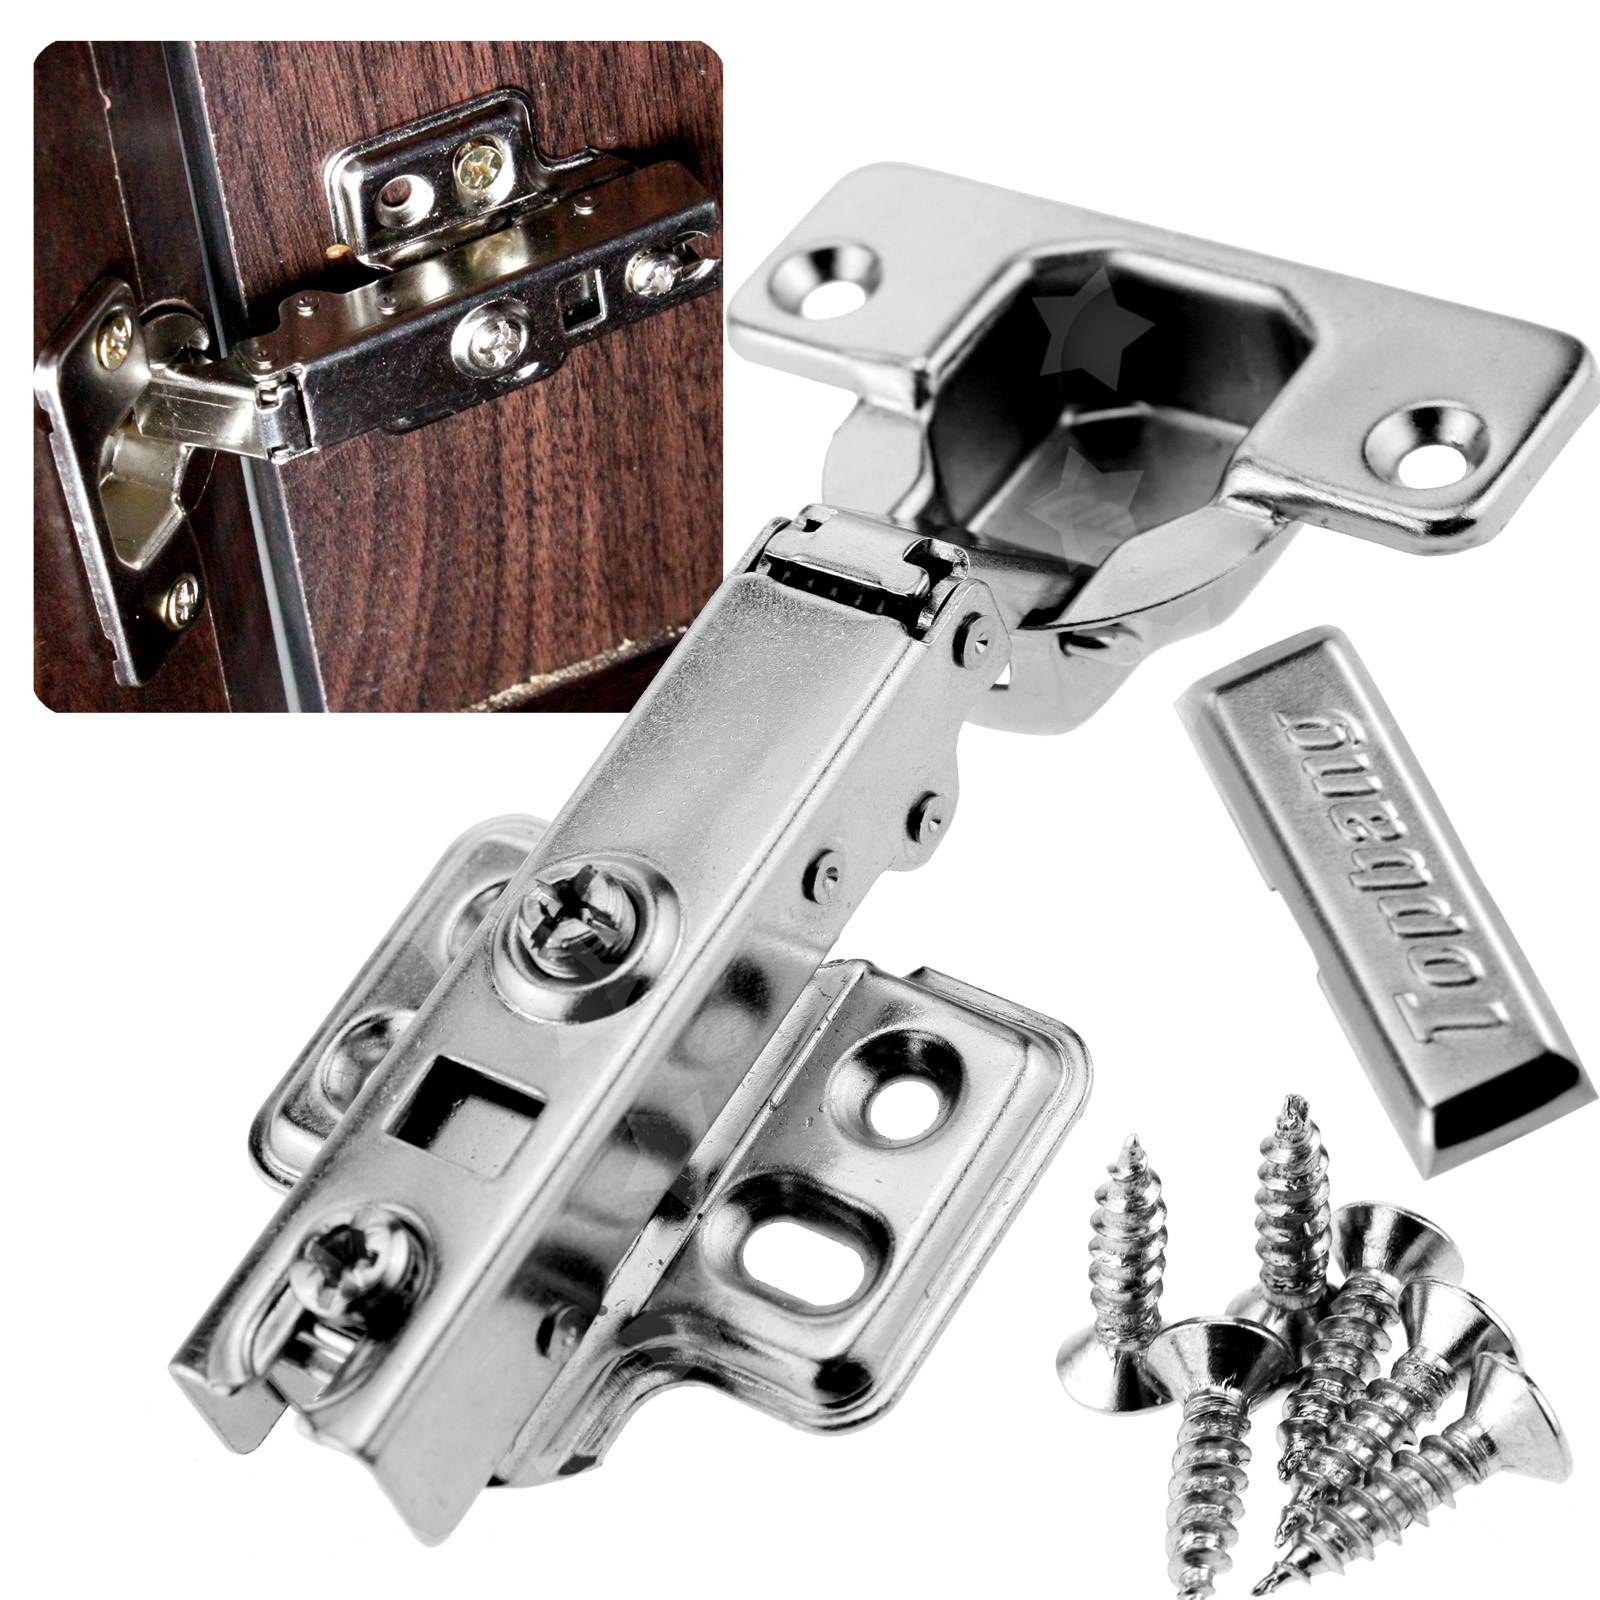 Top Quality Kitchen Cabinet Door Soft Close Hydraulic Standard Door Hinges Set  eBay